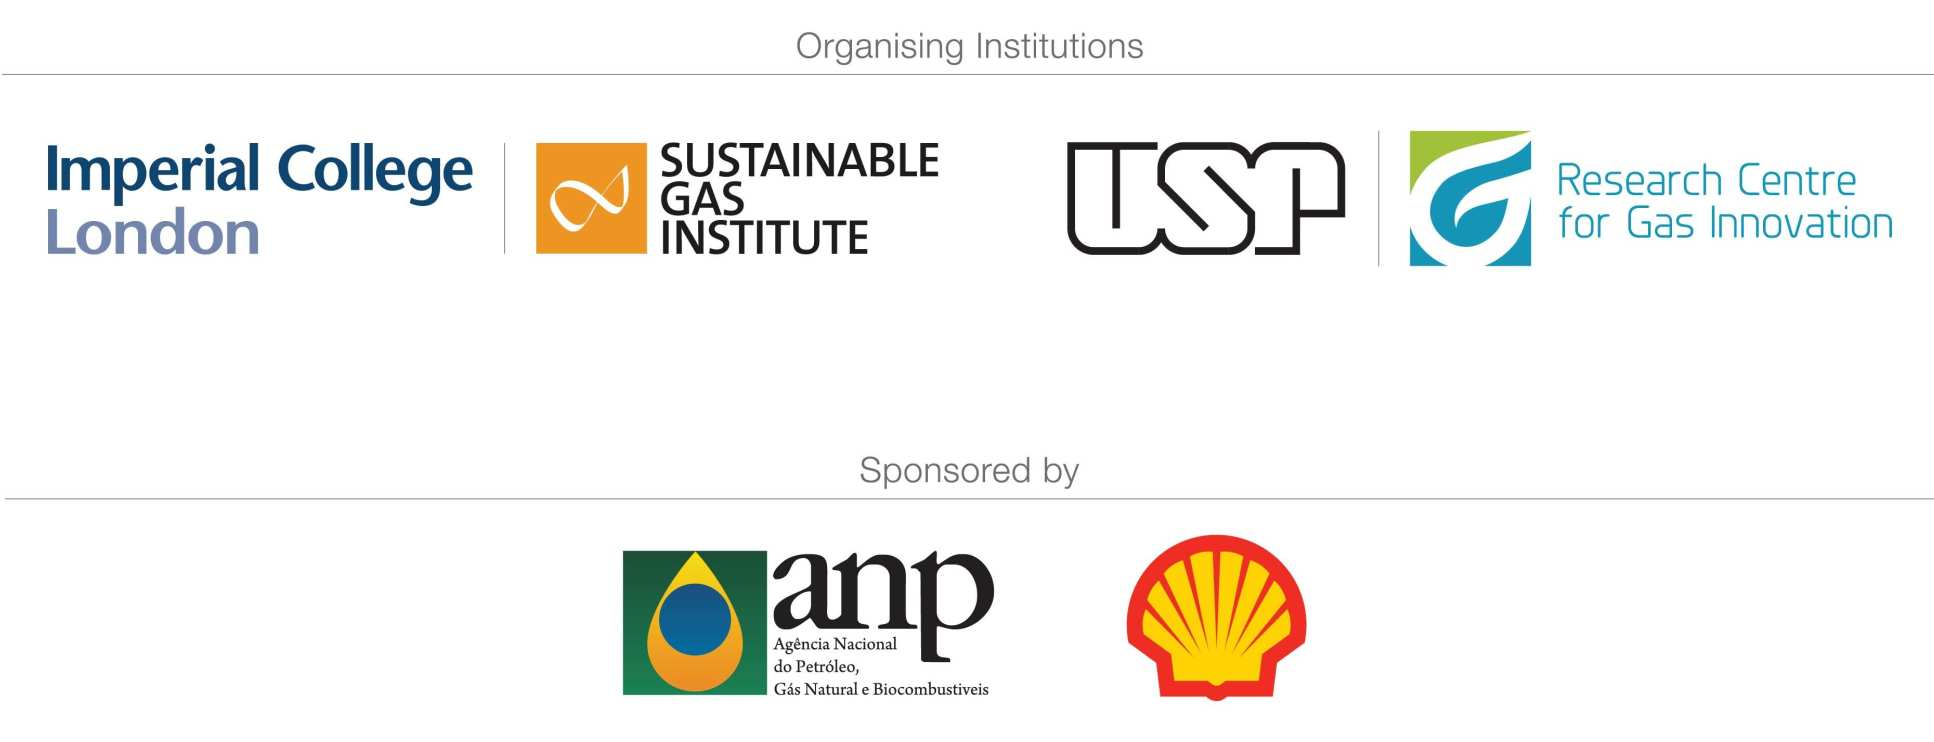 Organising institutions - Imperial College London, the Sustainable Gas Institute, USR and the Research Centre for Gas Innovation. Sponsored by ANP and Shell.